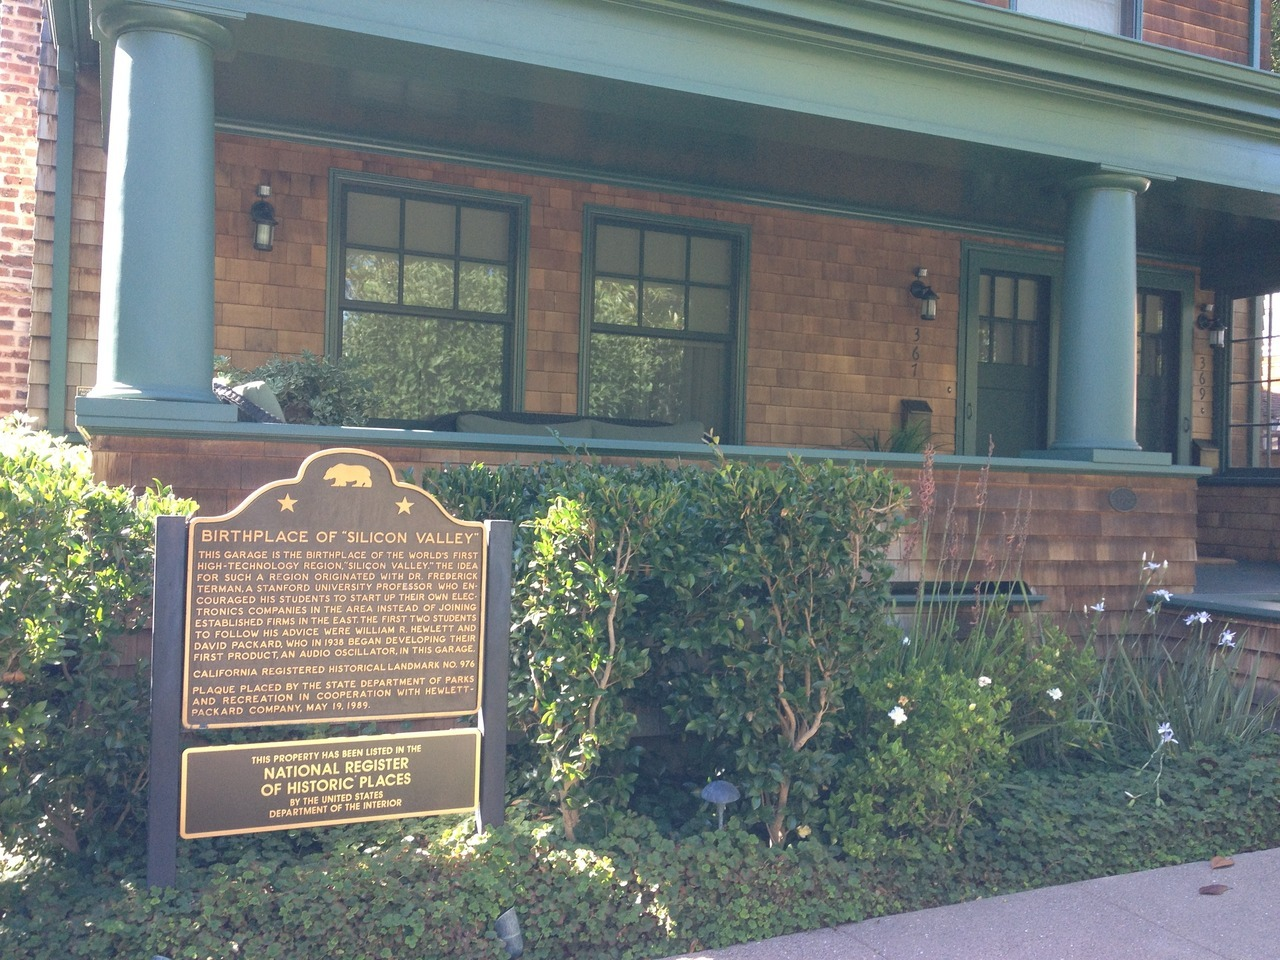 367 Addison Avenue, Palo Alto. Where it all began for Hewlett and Packard.